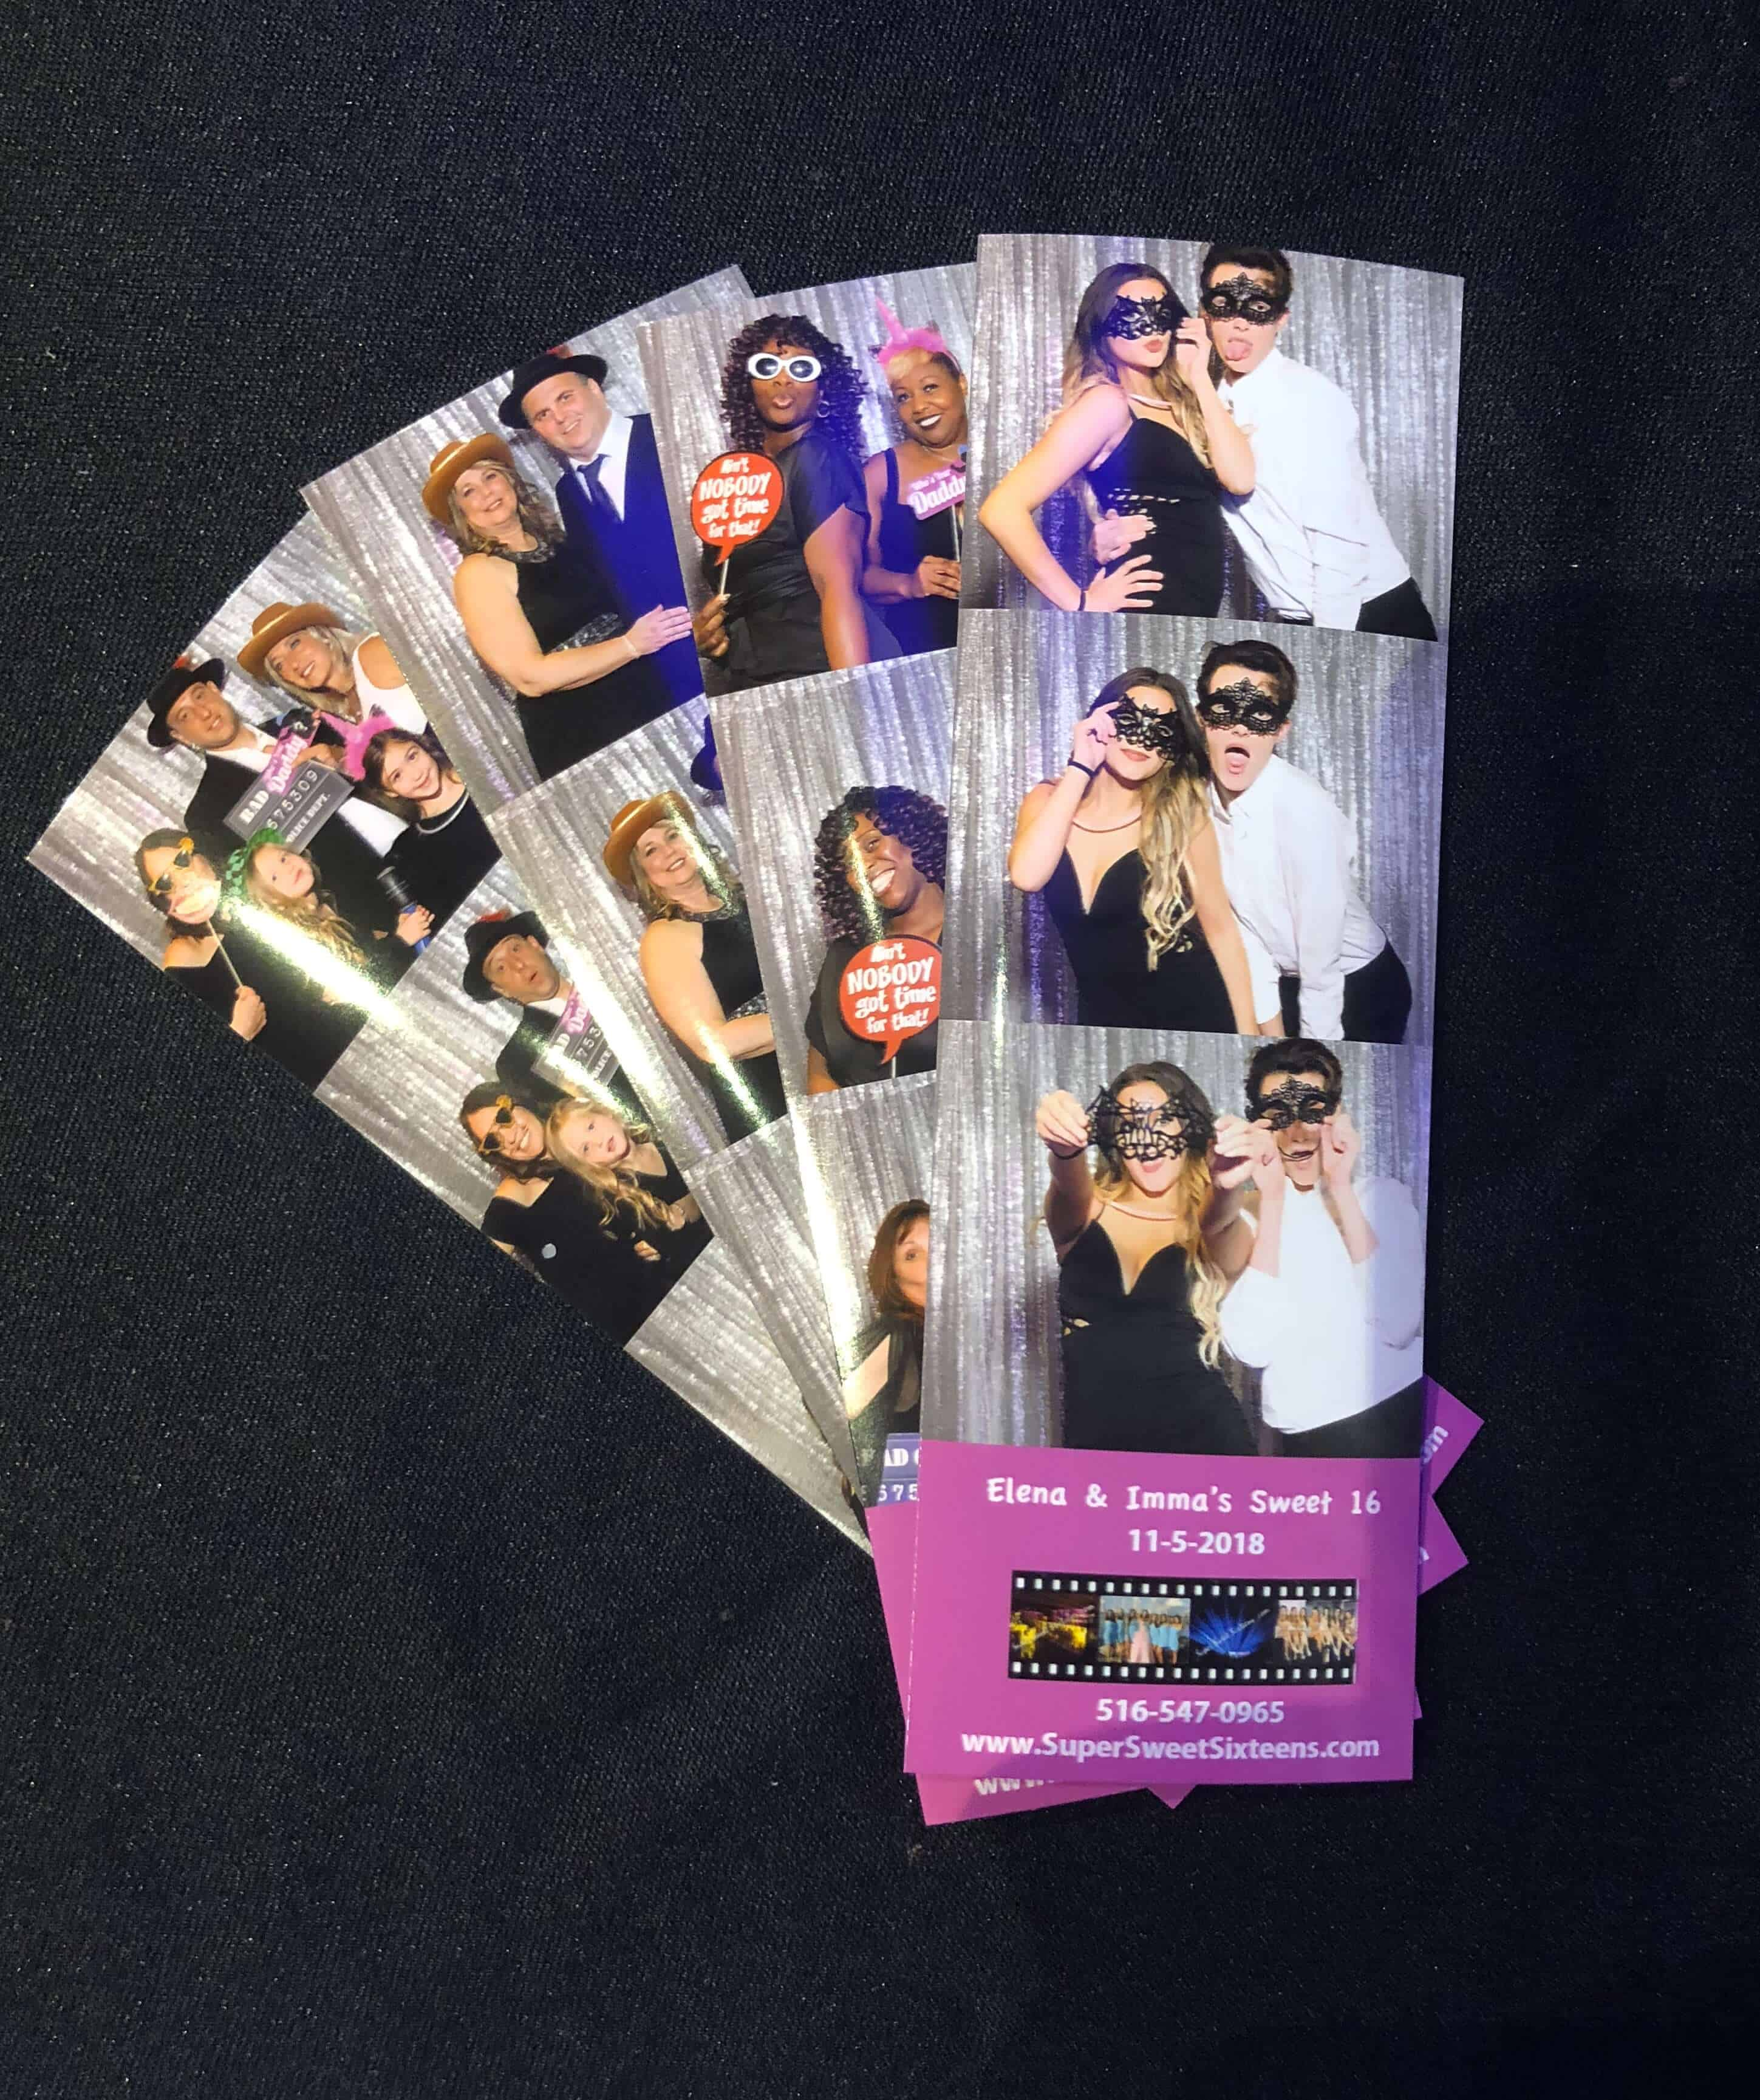 long island photo booth rentals nj westchester staten island 5 towns queens brooklyn bronx conecticut